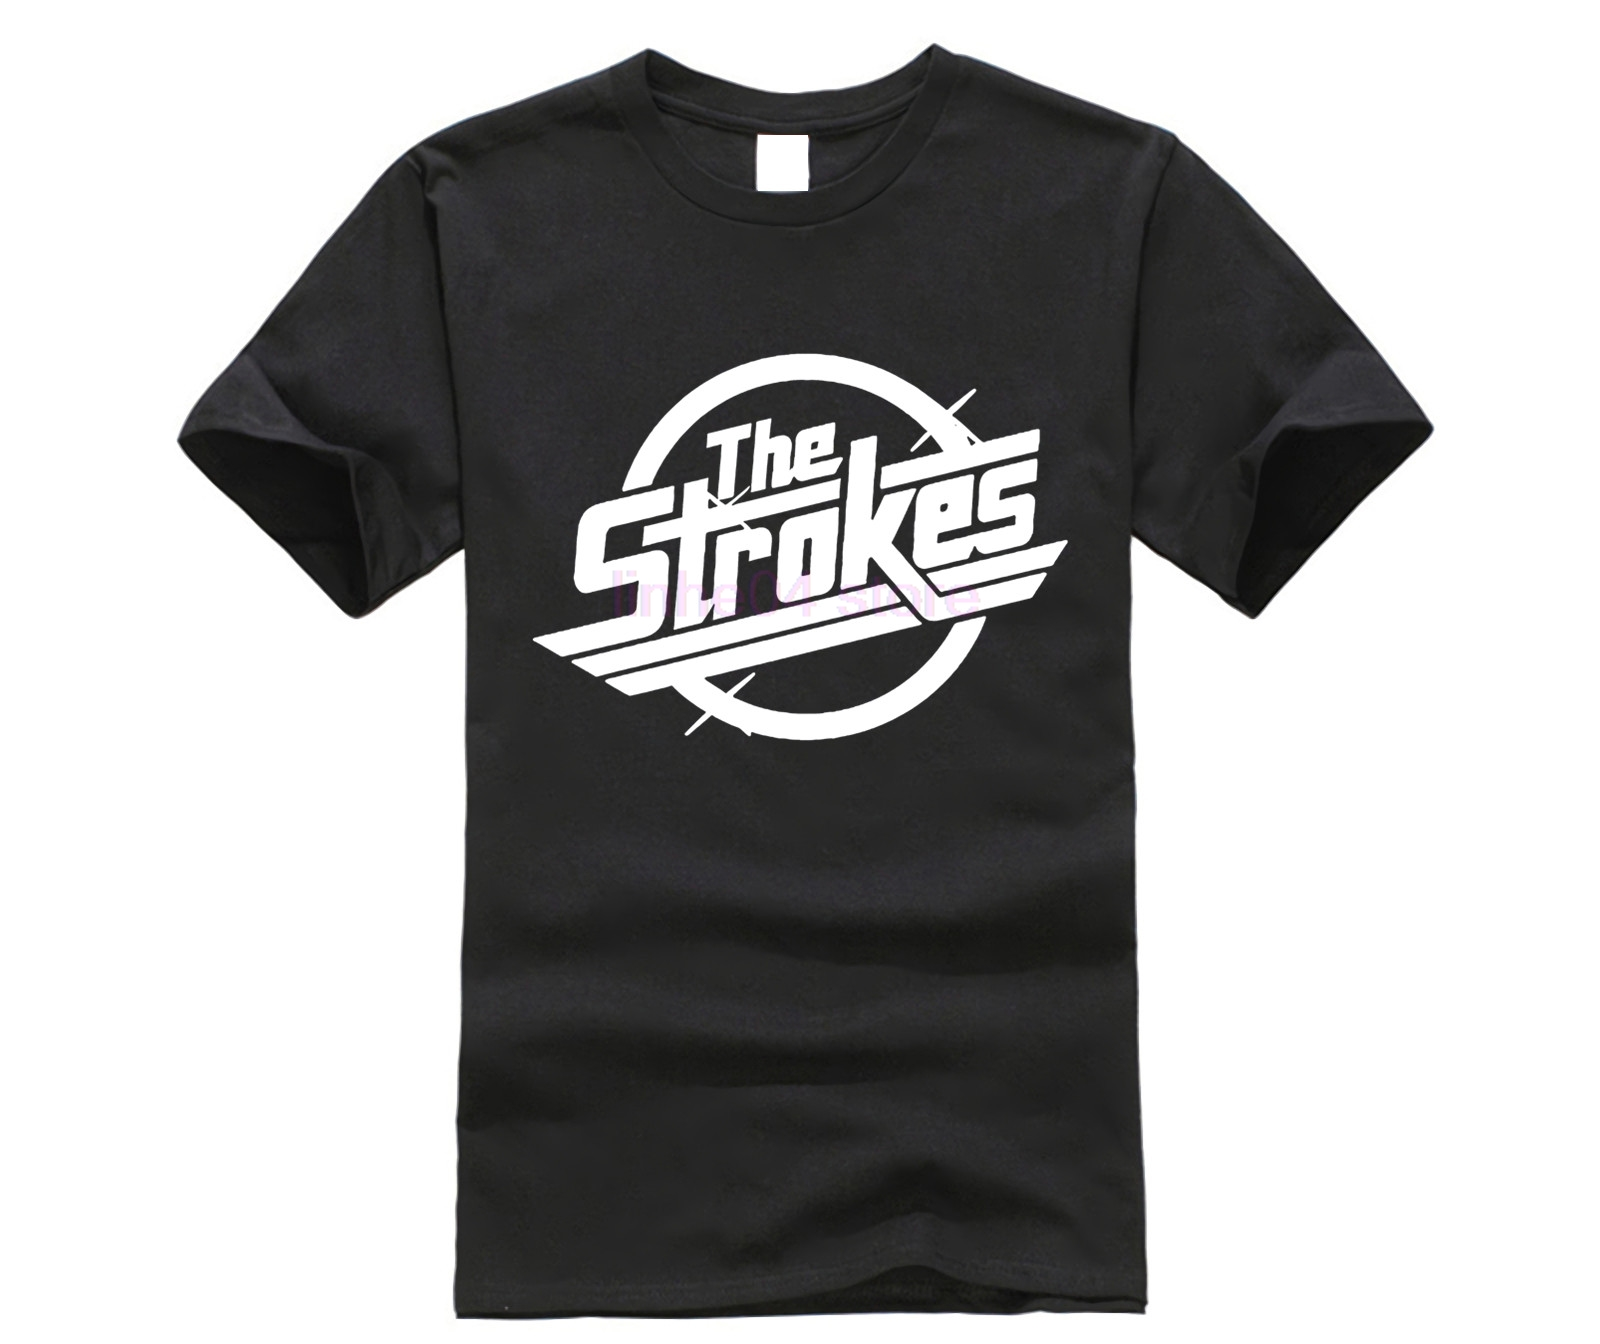 a2cf5b23 Detail Feedback Questions about The Strokes T Shirt Men Summer 100% Cotton  Cool Tee Male Plus Size Clothing Summer Loose Teenboys Tee Shirt Albert  Hammond ...